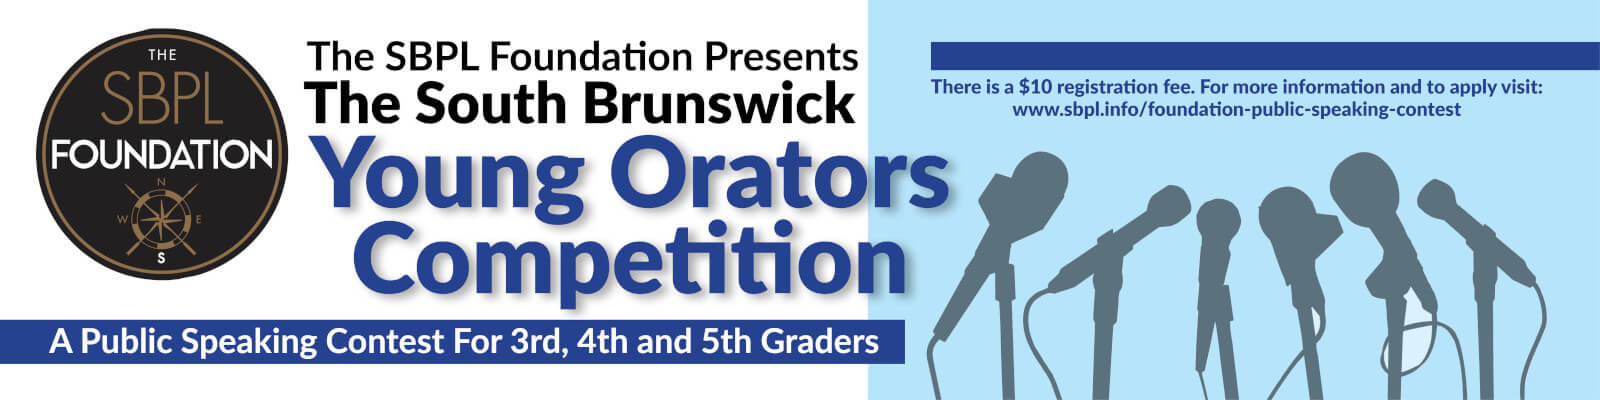 Young Orators Competition